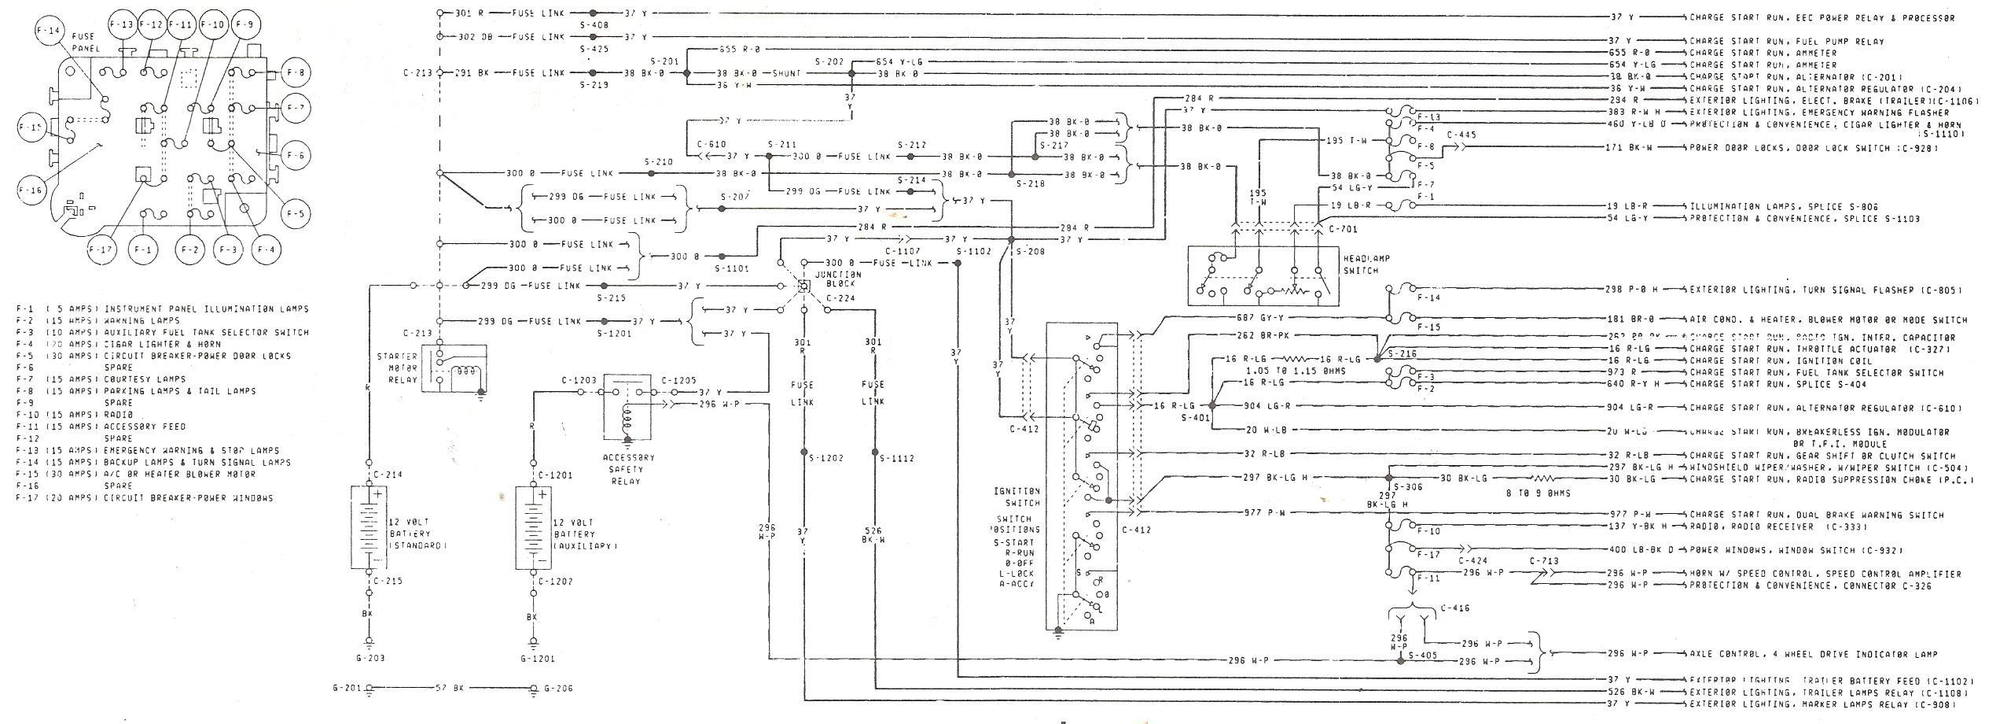 alternator wiring diagram 1984 f150 302  alternator  free